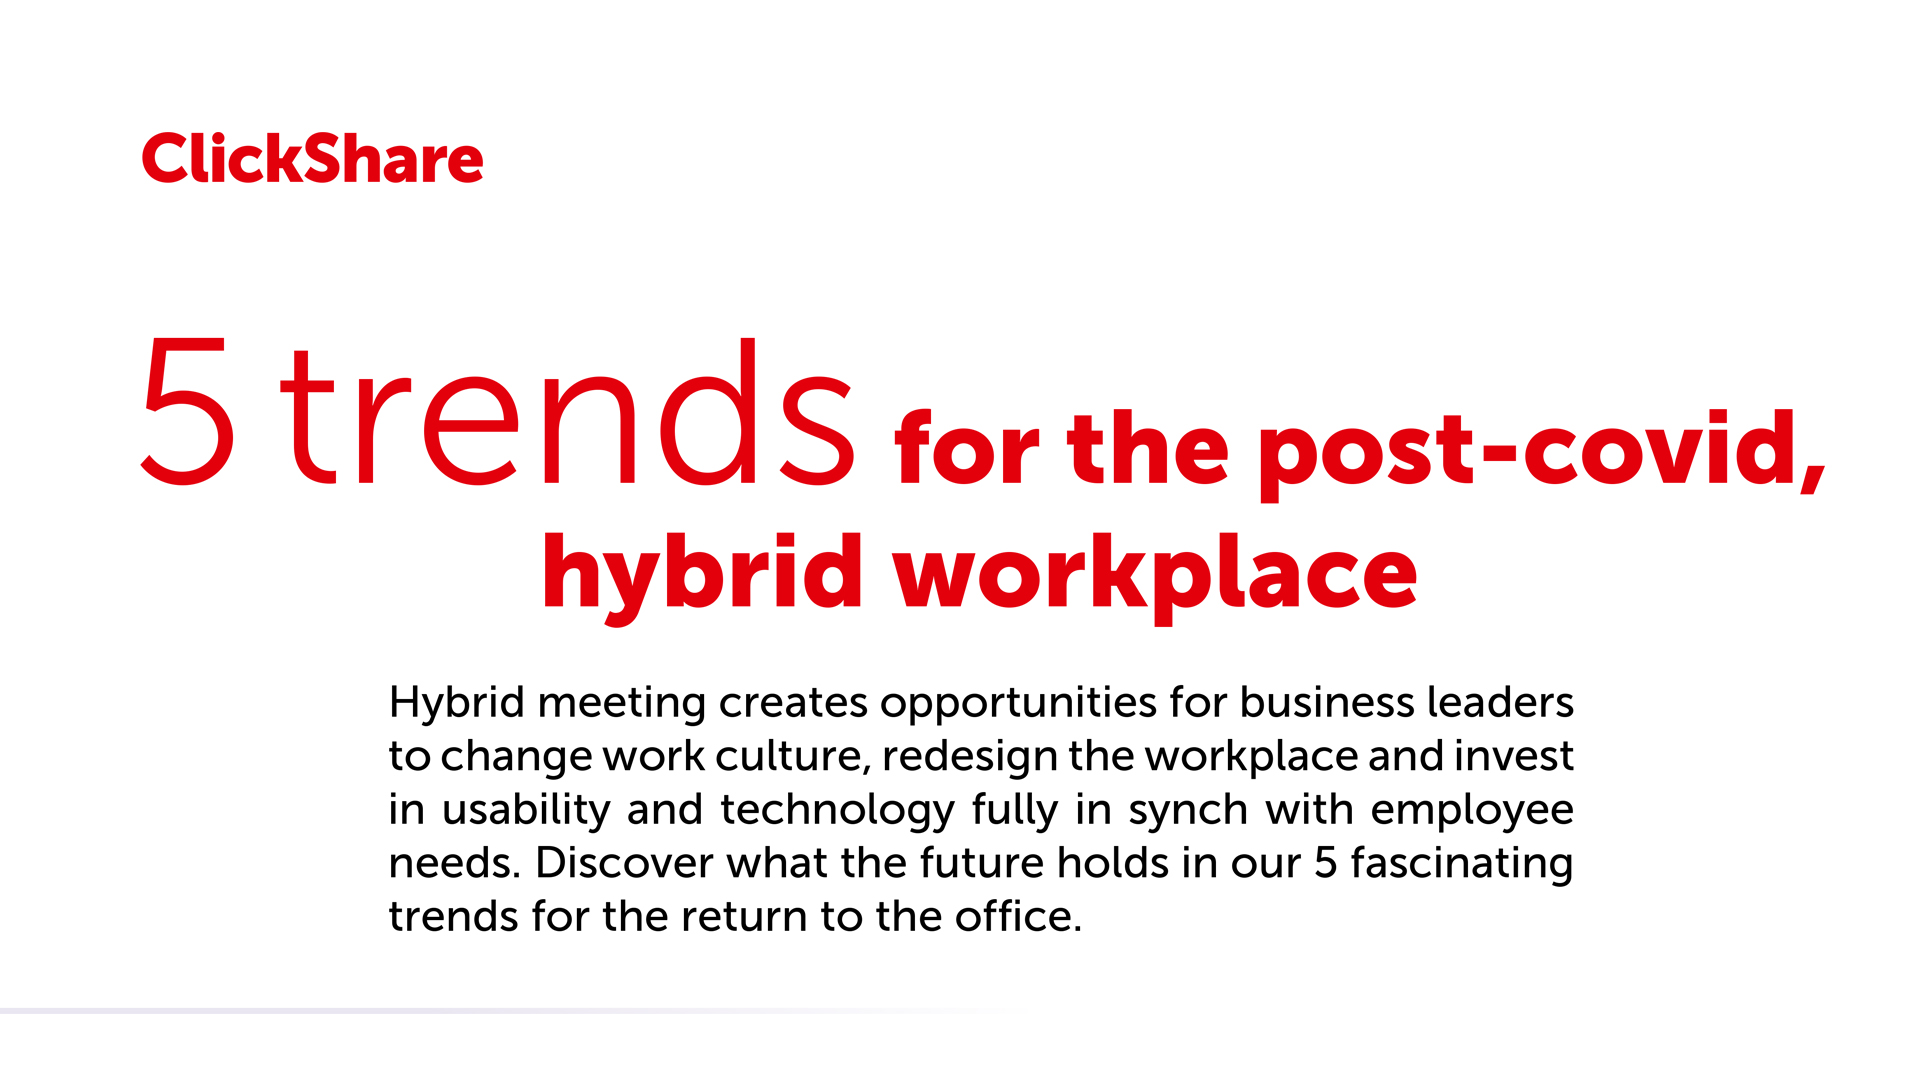 5 trends for the post-COVID hybrid workplace